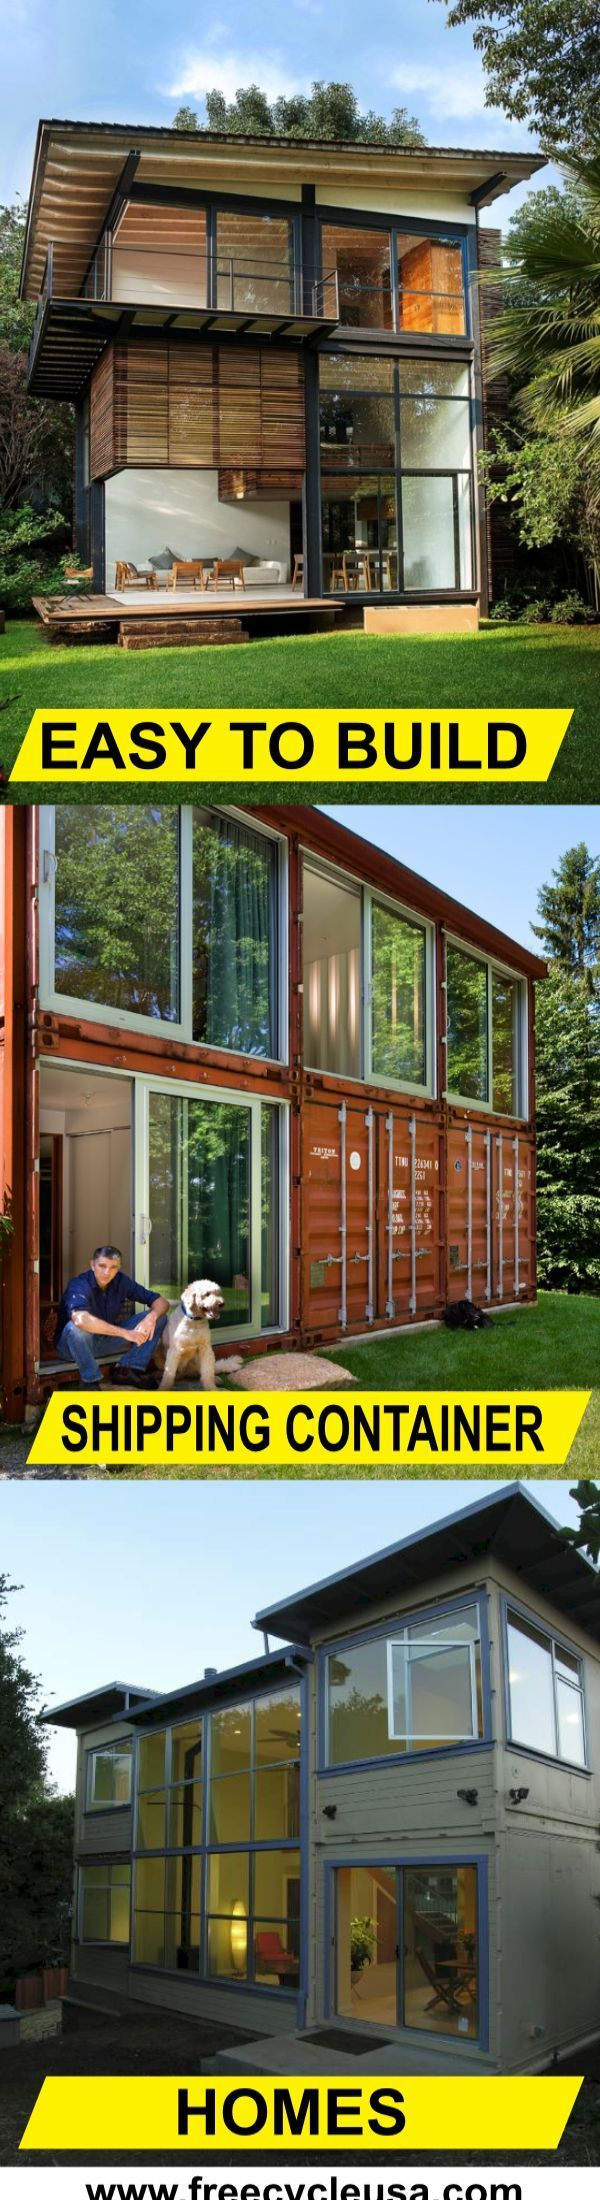 Why Tiny House Living Is So Relaxing Ships Tiny Houses And House - All terrain cabin shipping container homes